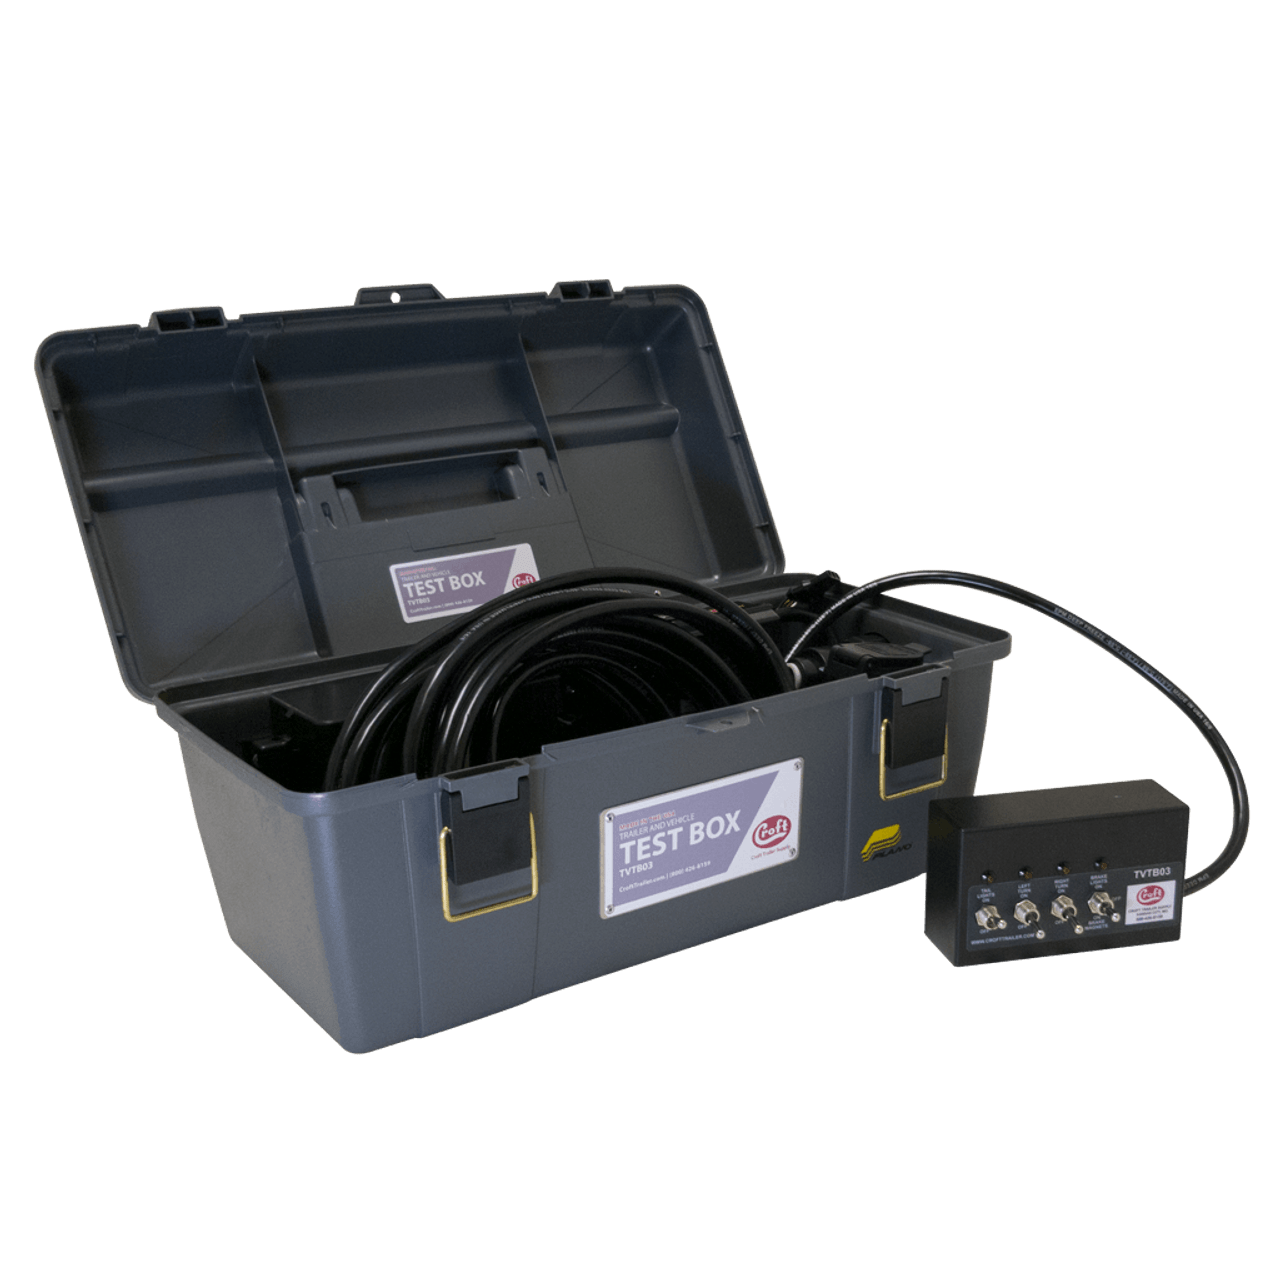 hight resolution of tvtb03 trailer and vehicle test box lights electric brakes and vehicle connector croft trailer supply